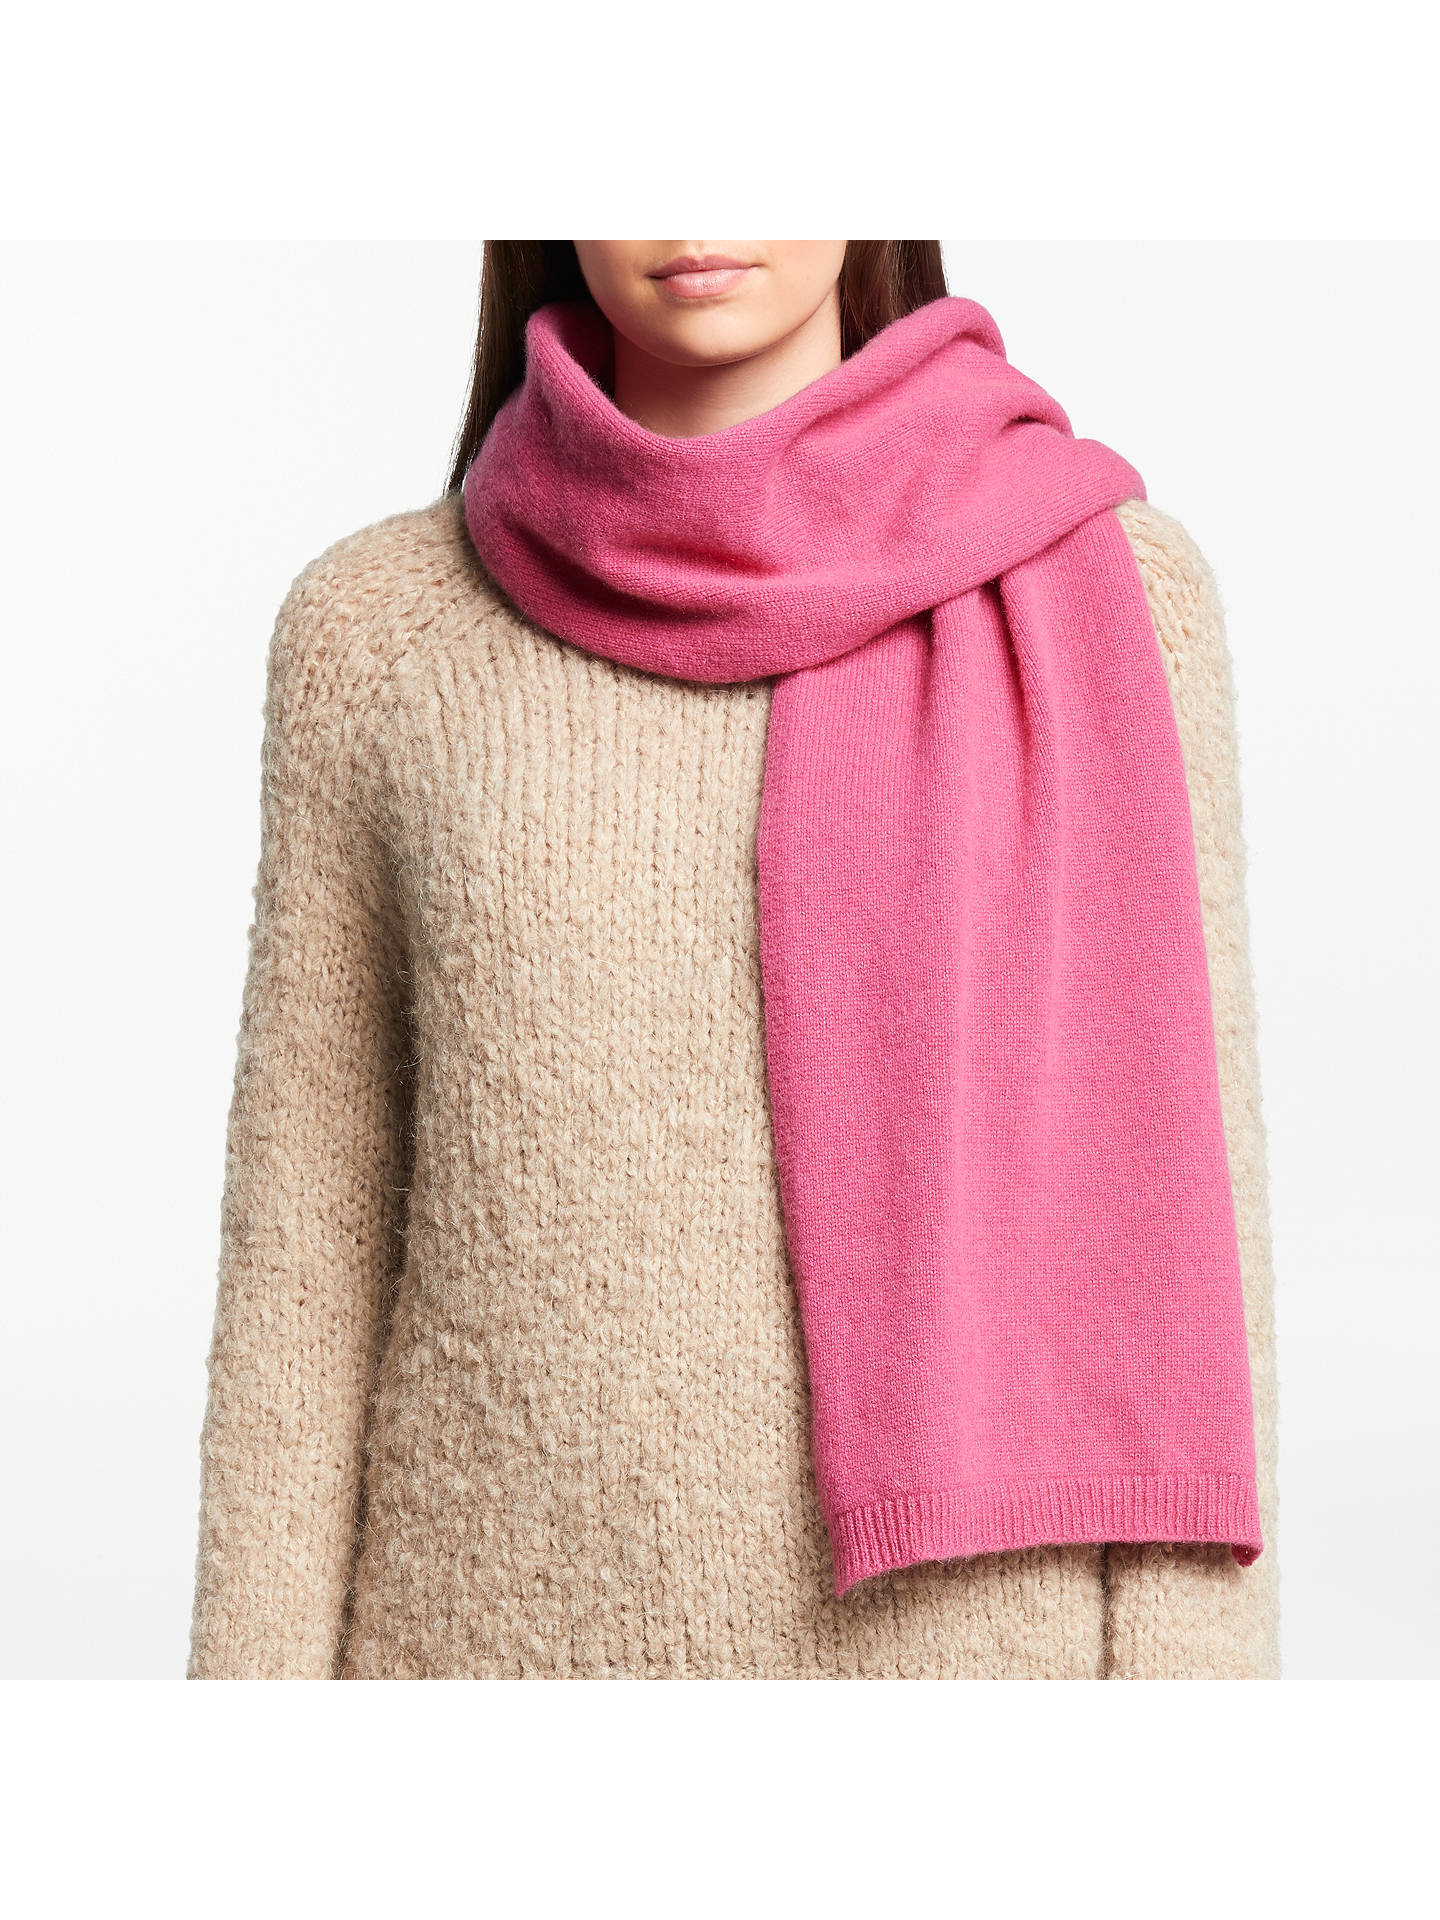 807859c75e6e2 ... Buy John Lewis & Partners Cashmere Scarf, Pink Online at johnlewis. ...